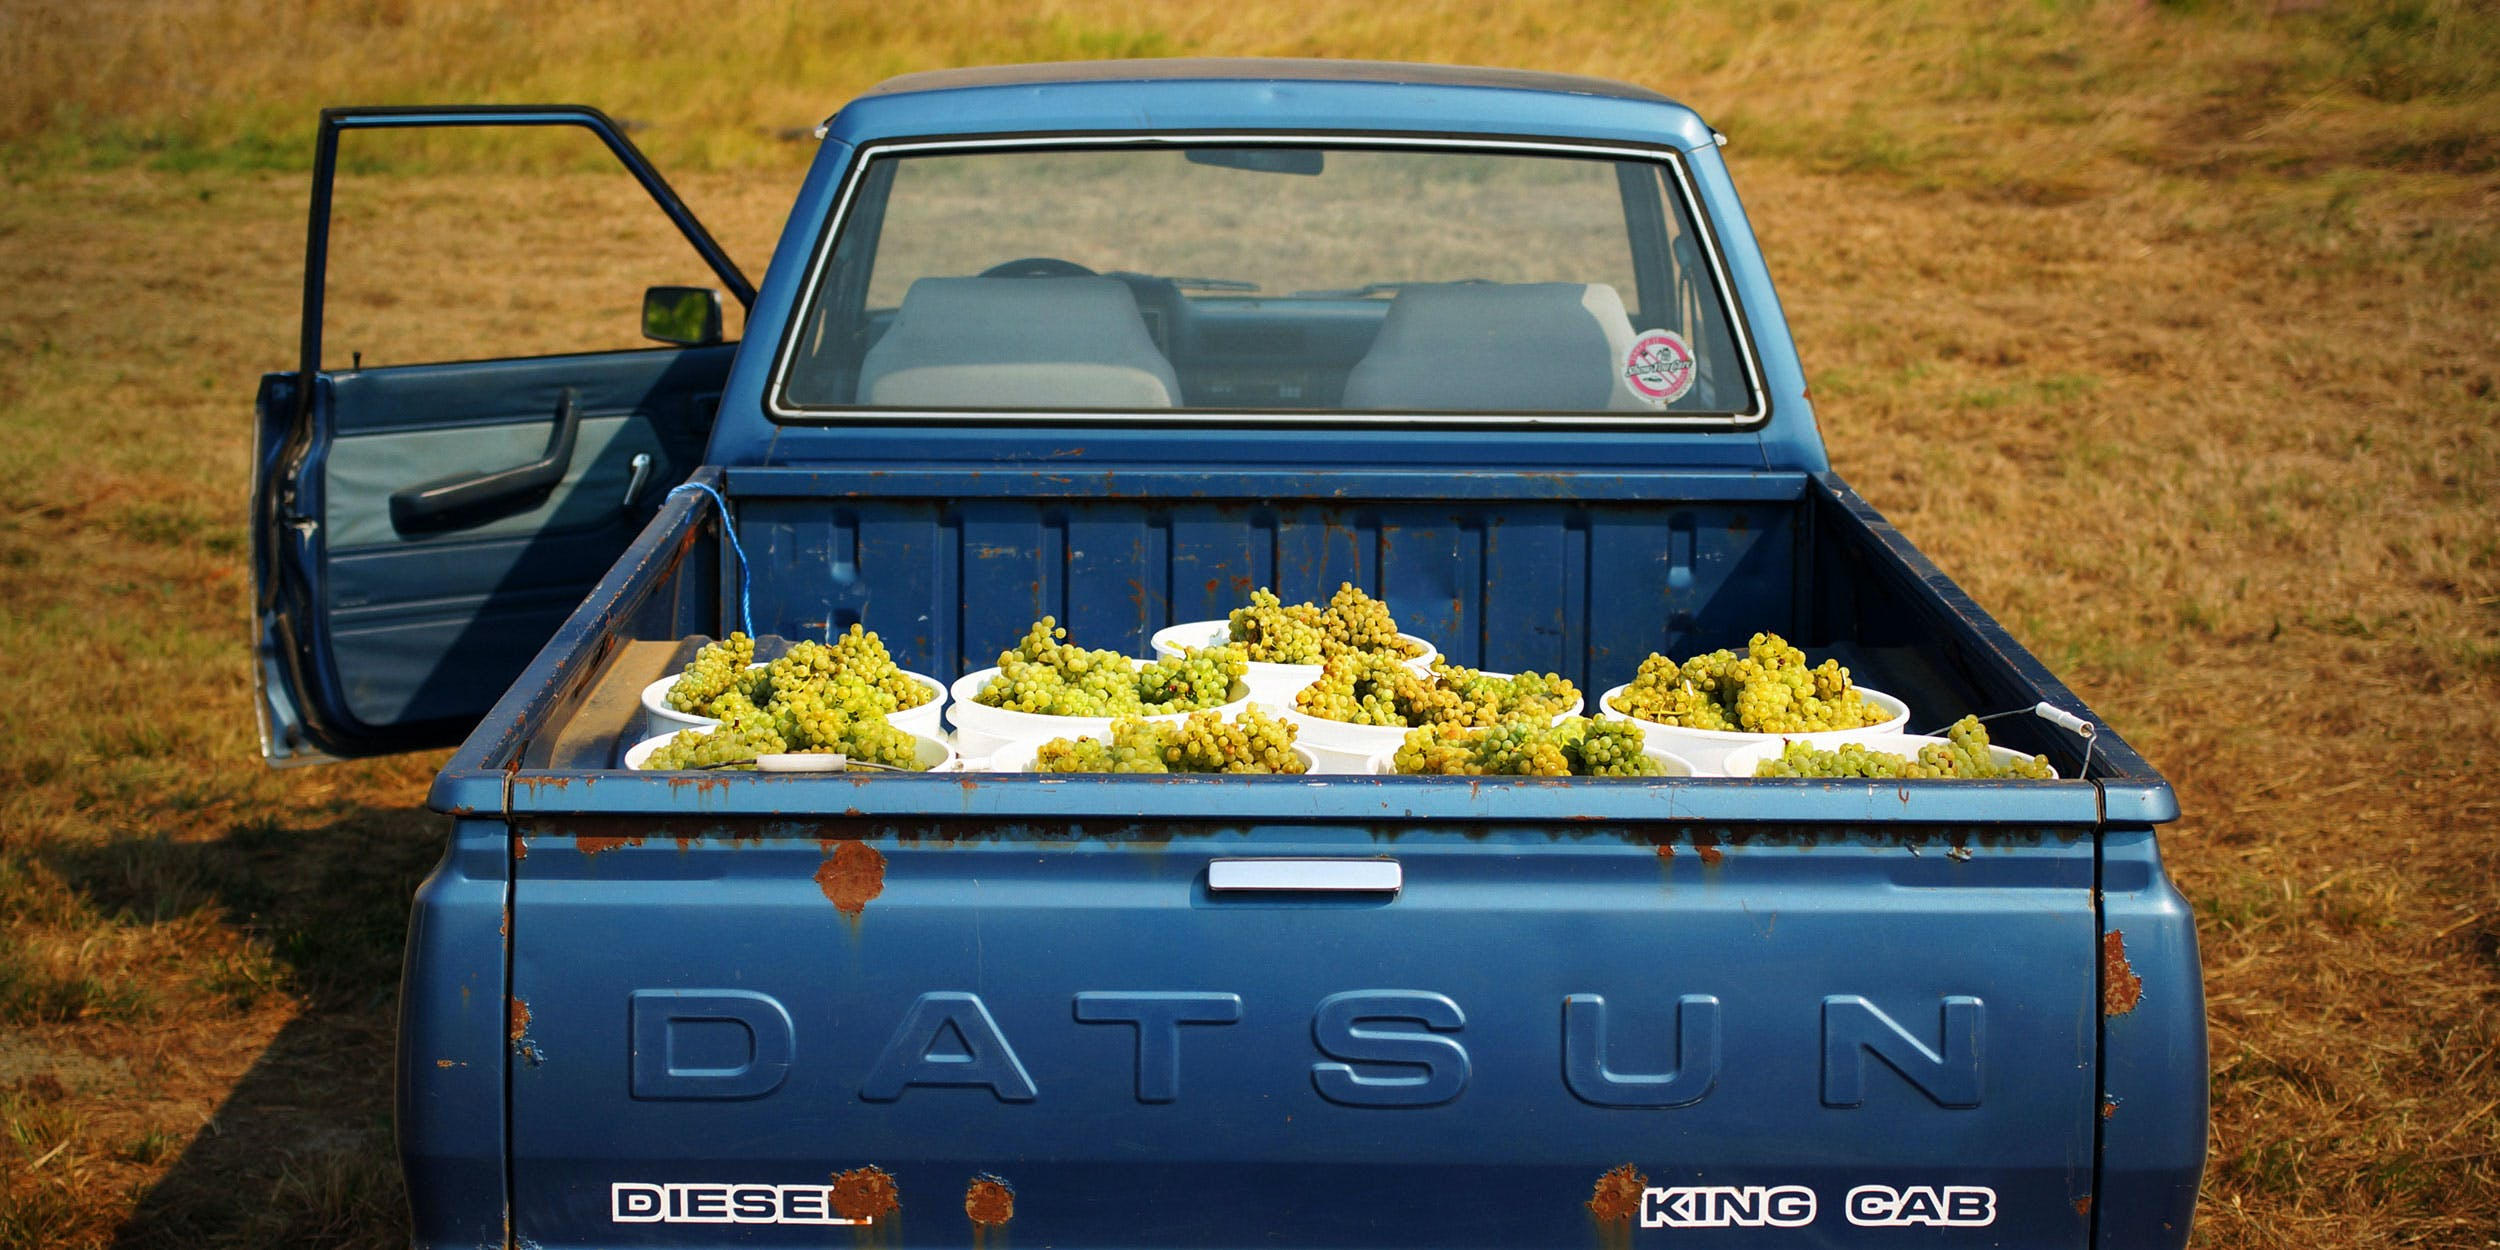 Truck full of grapes to make wine